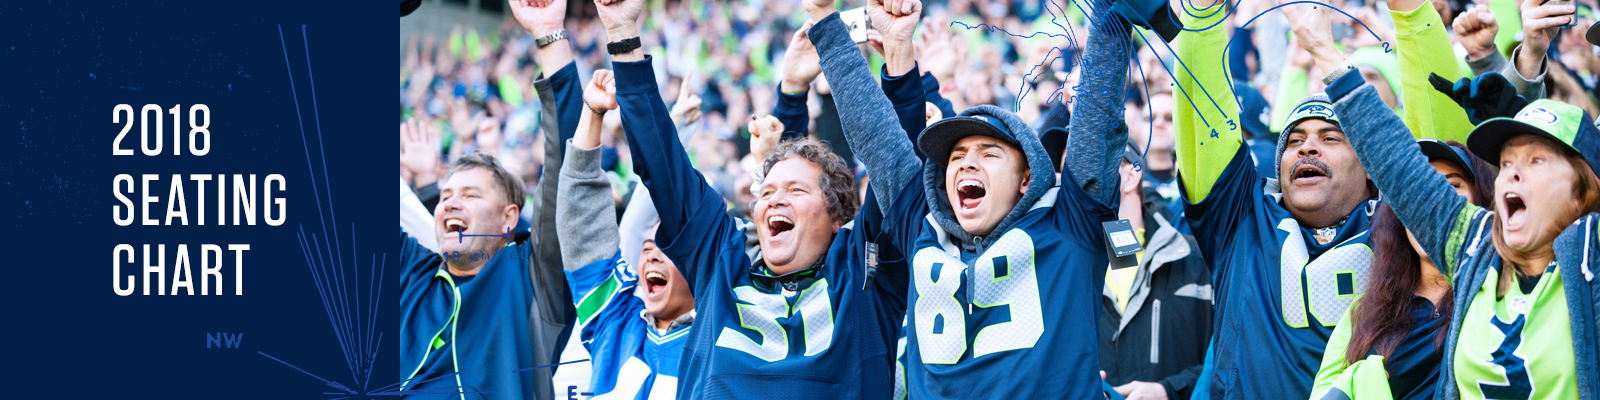 Centurylink Seating Chart with Rows and Seat Numbers Elegant Seattle Seahawks Seating Chart at Centurylink Field